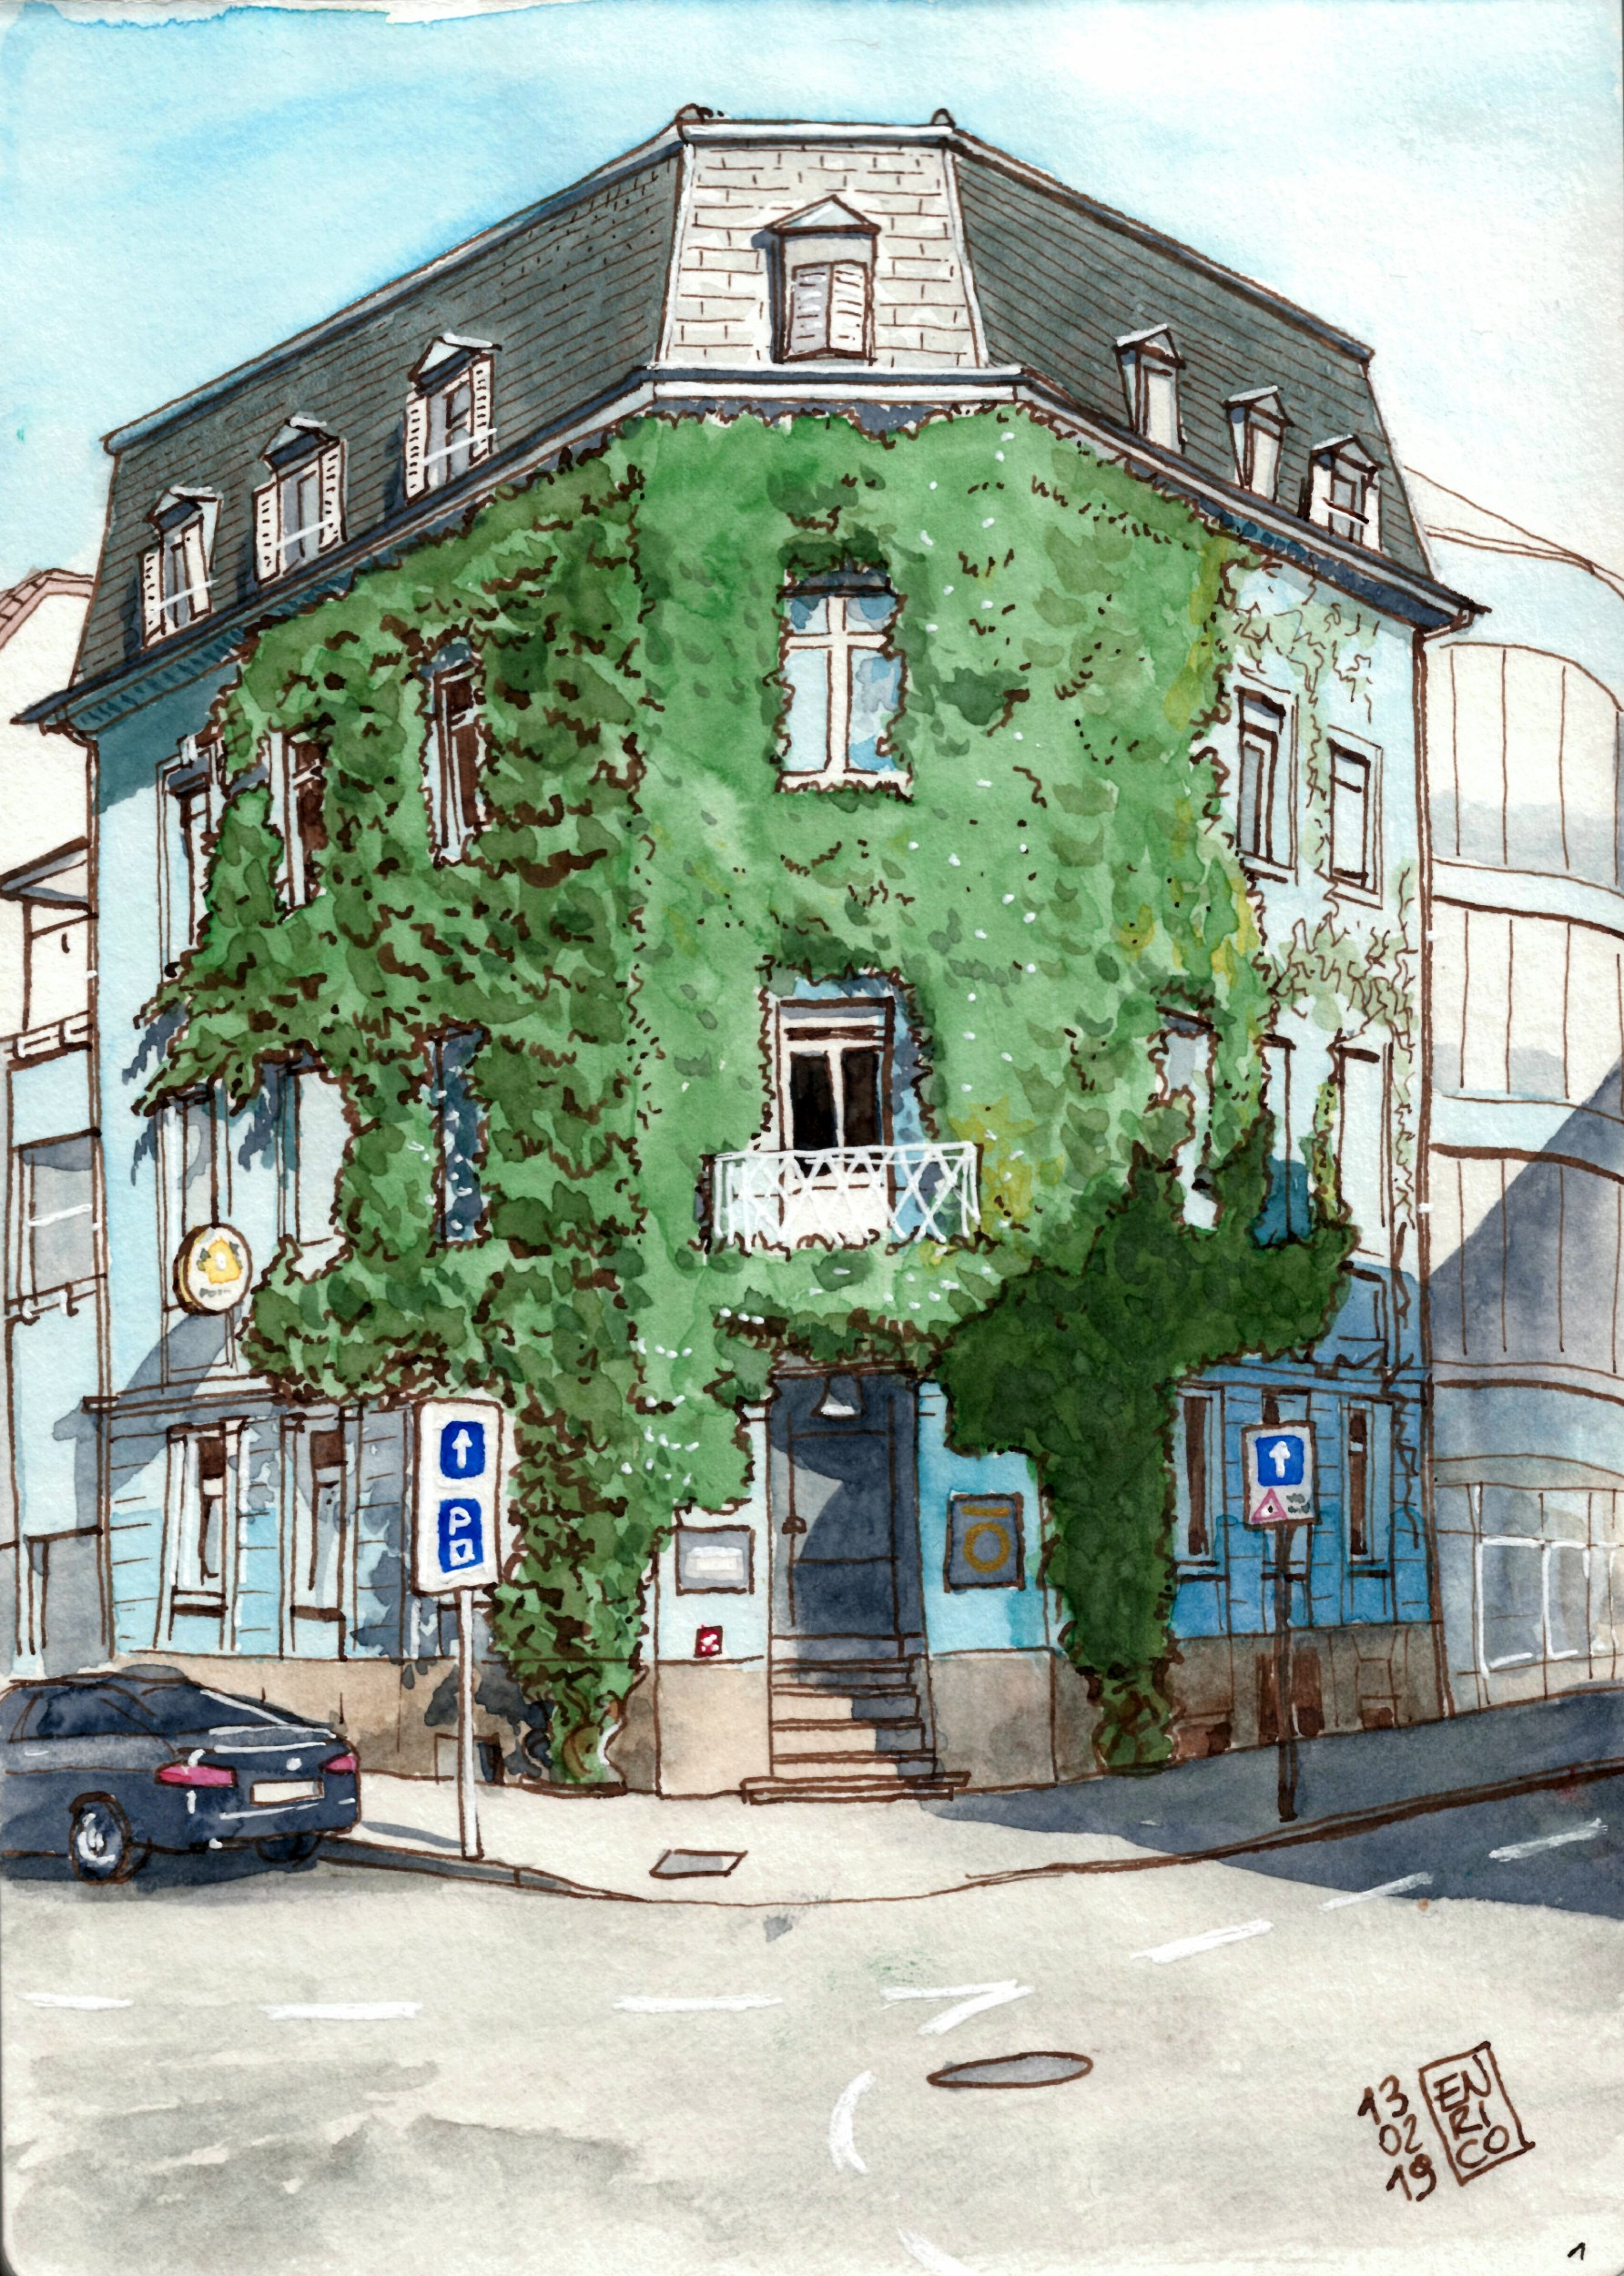 I like this ivy-covered building